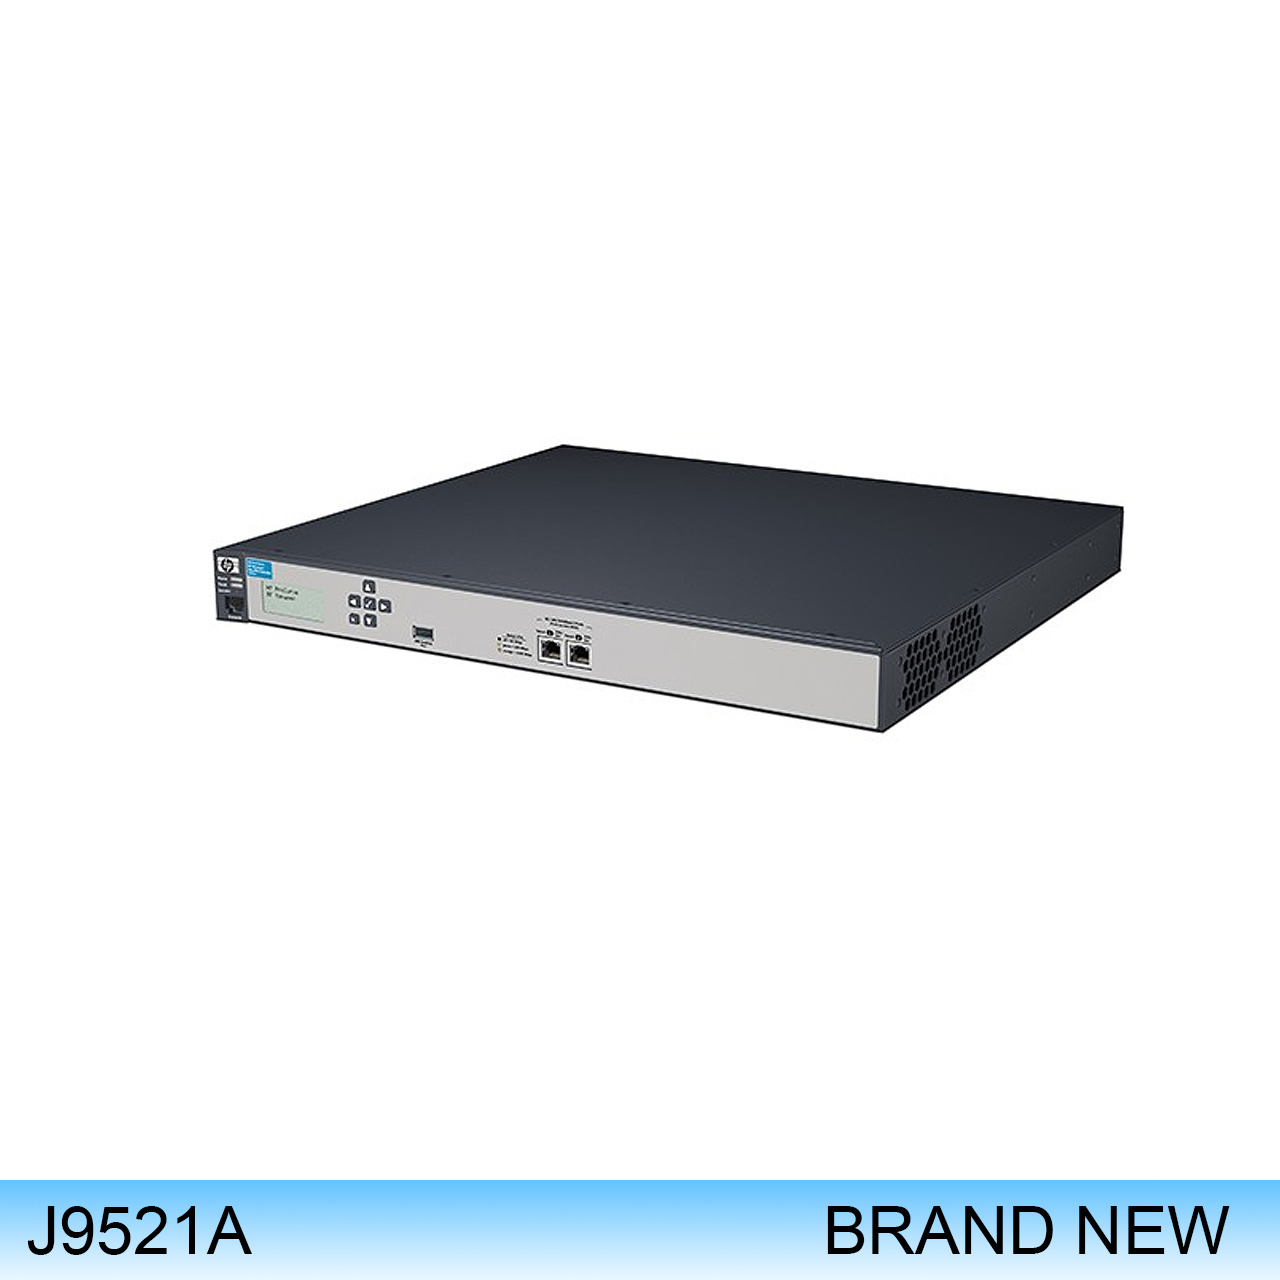 J9521A | HP PROCURVE RF Manager CNTRL w 50-sensor license